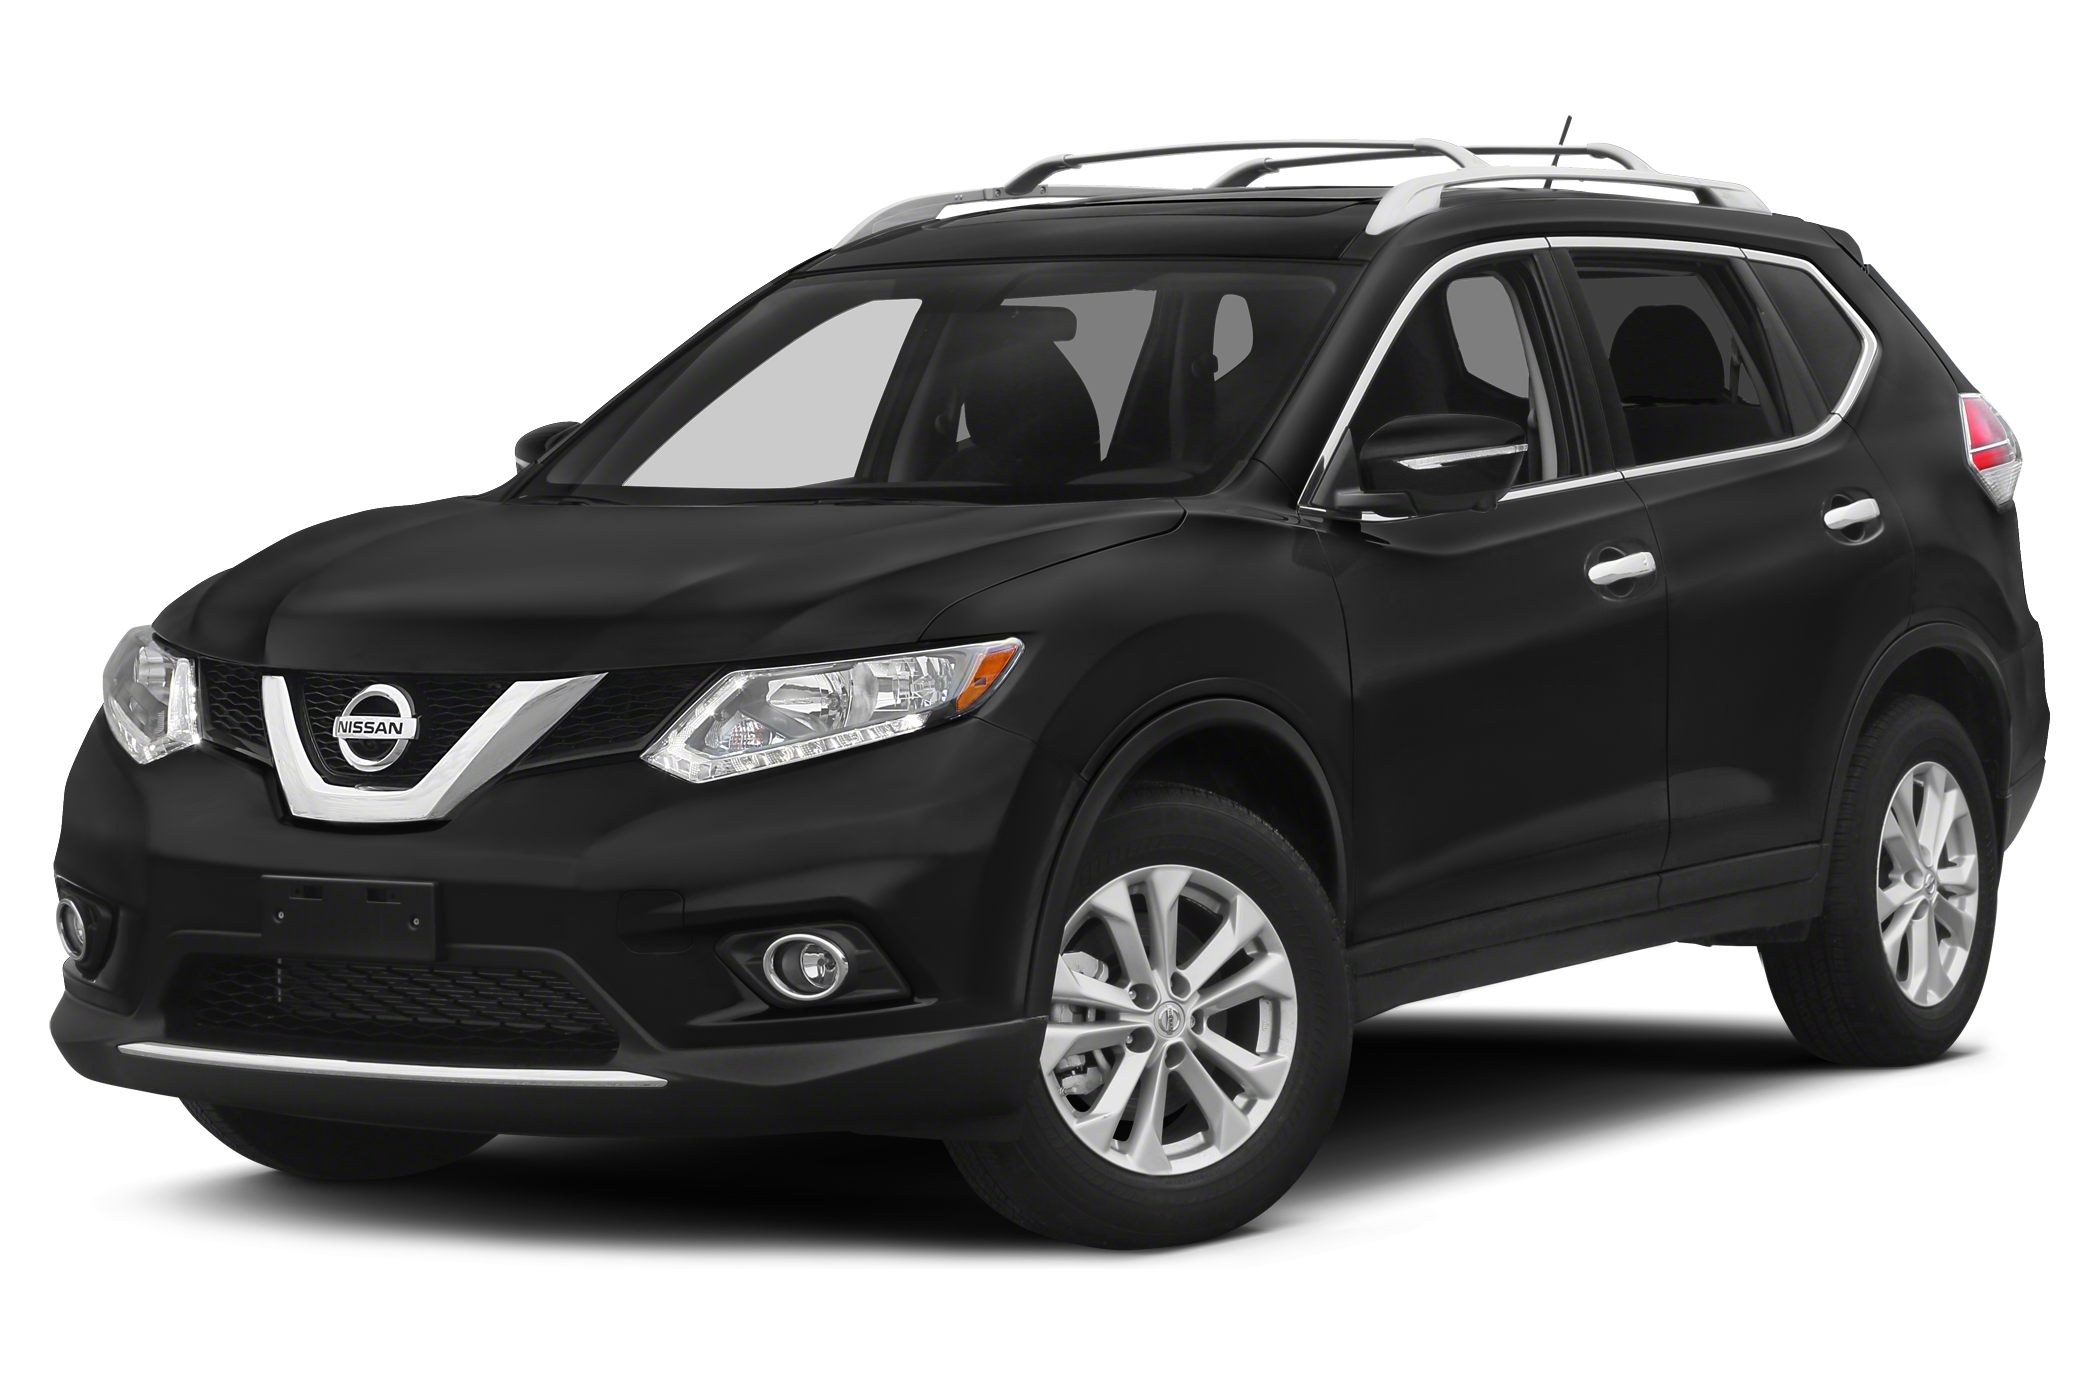 2015 Nissan Rogue SL SUV for sale in Hawthorne for $31,160 with 12 miles.